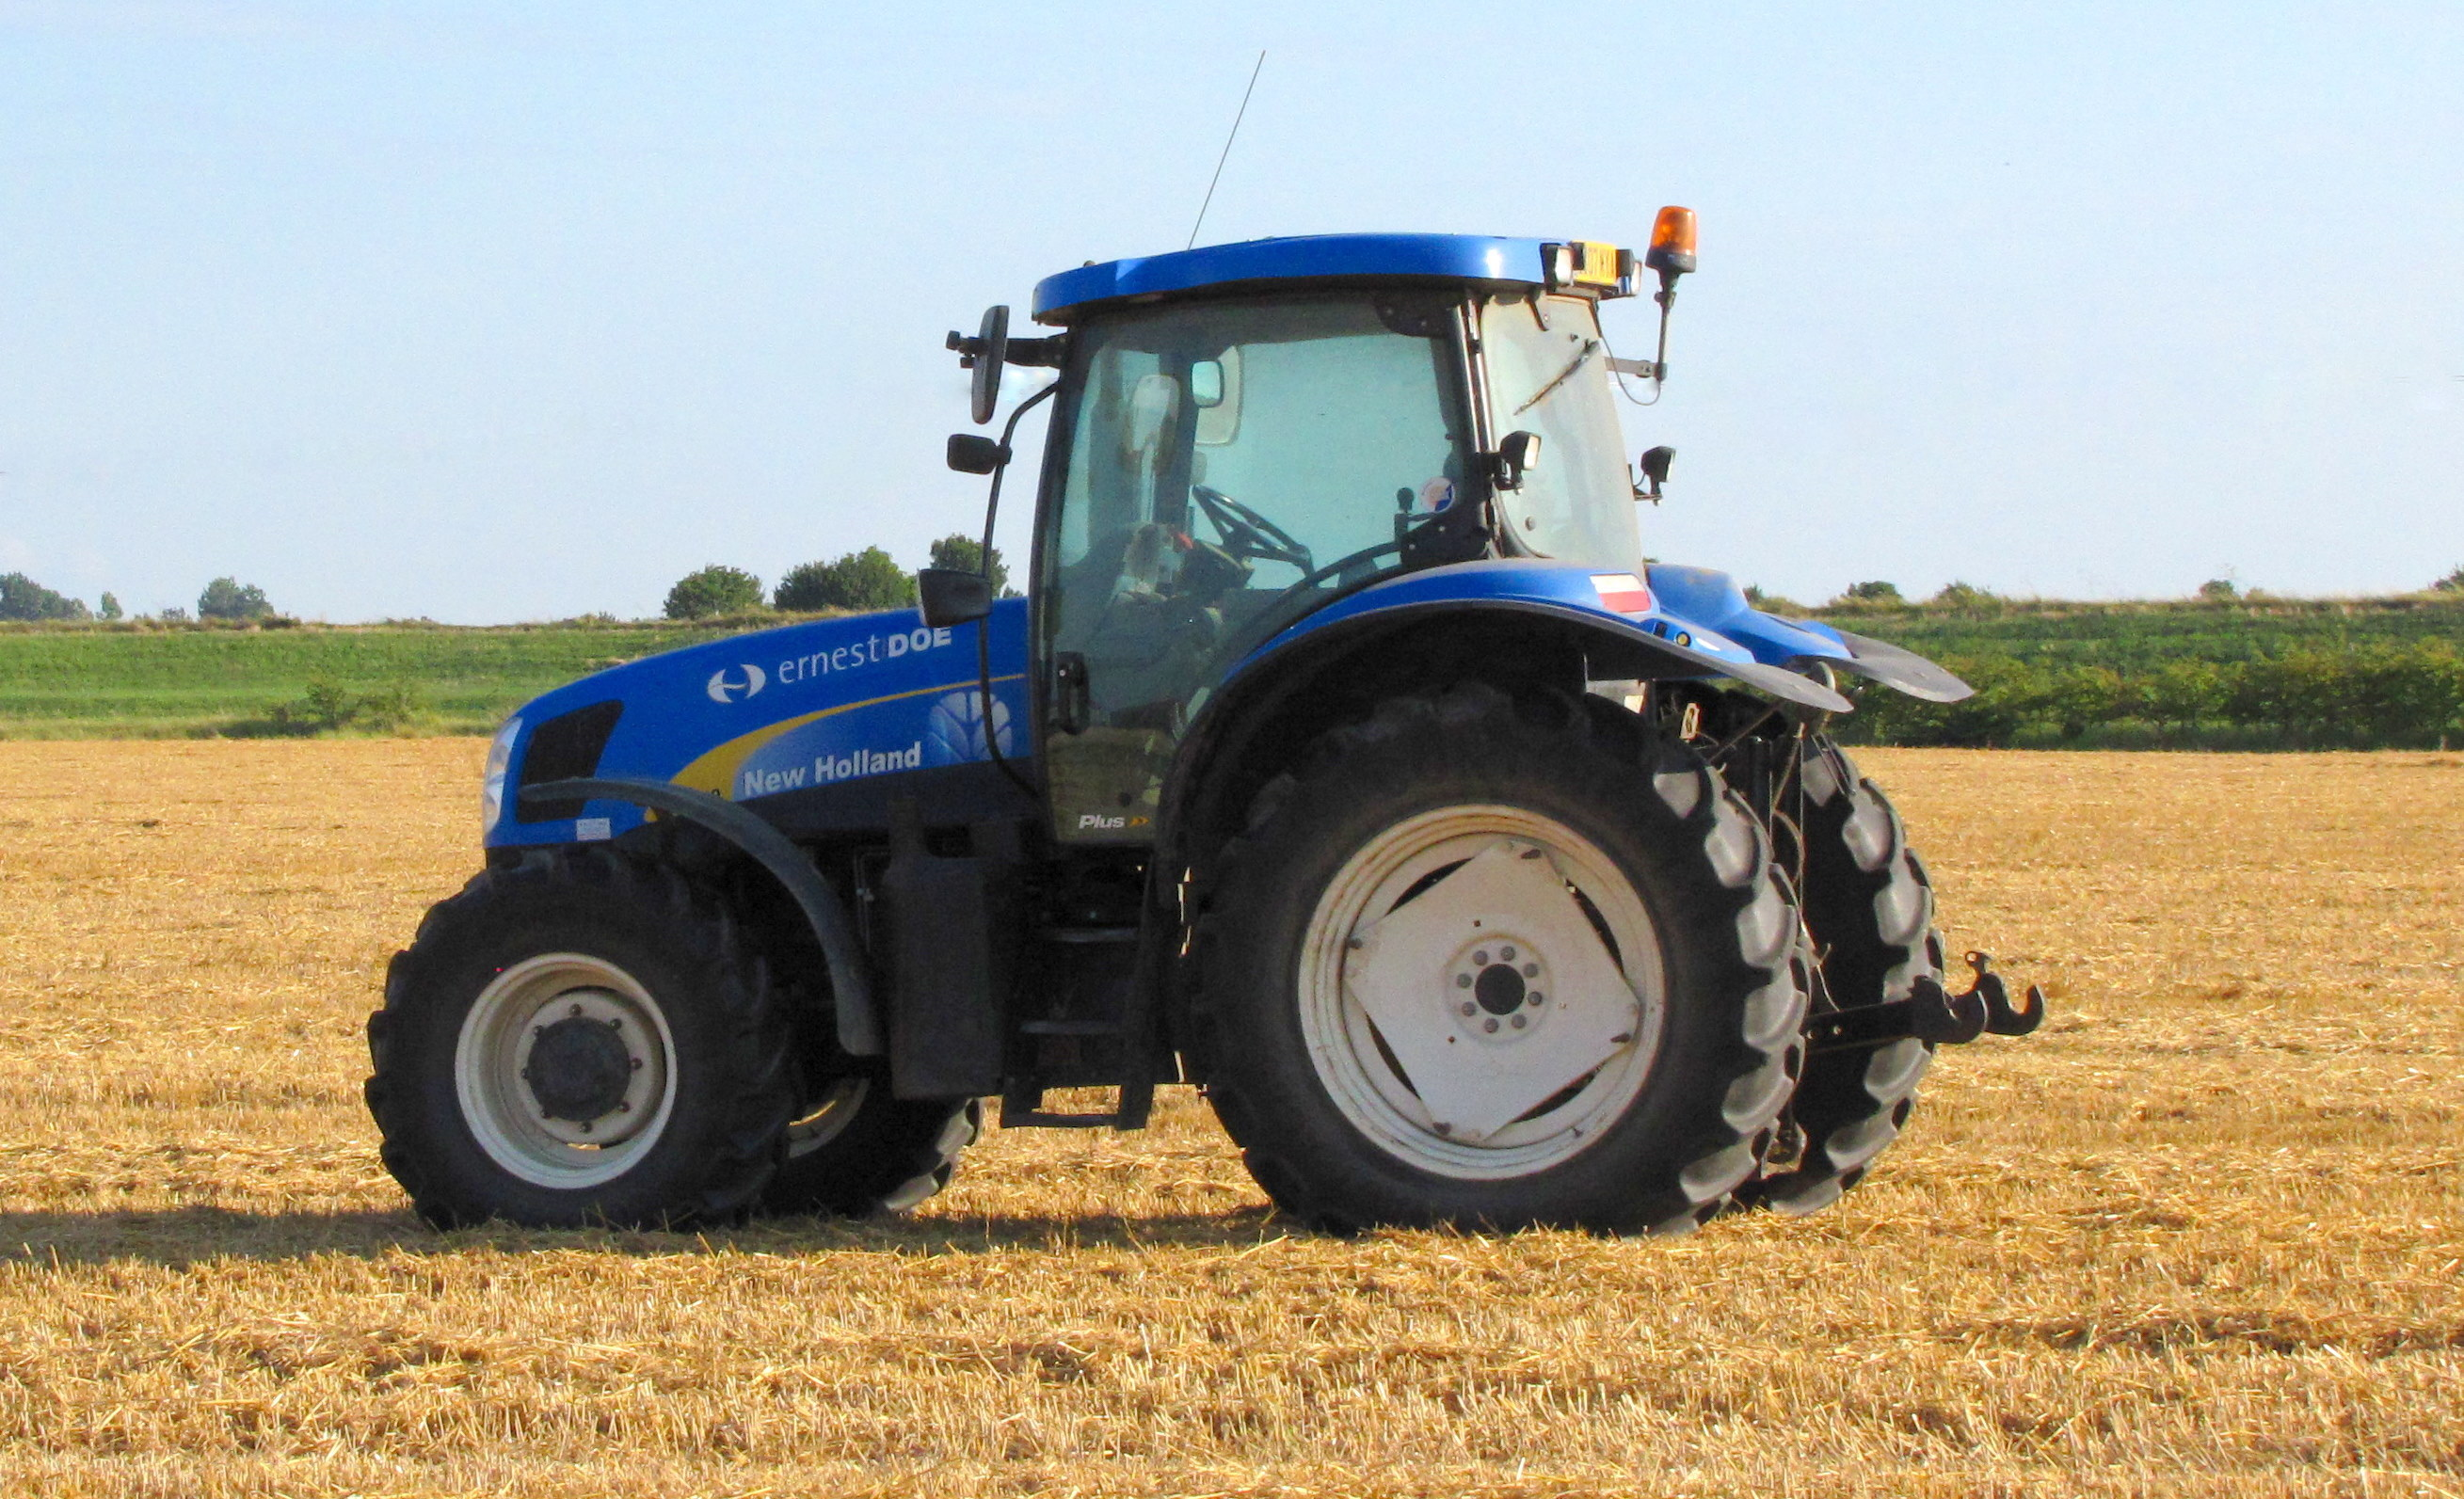 New Holland Tractors : File new holland tractor in a field g wikimedia commons